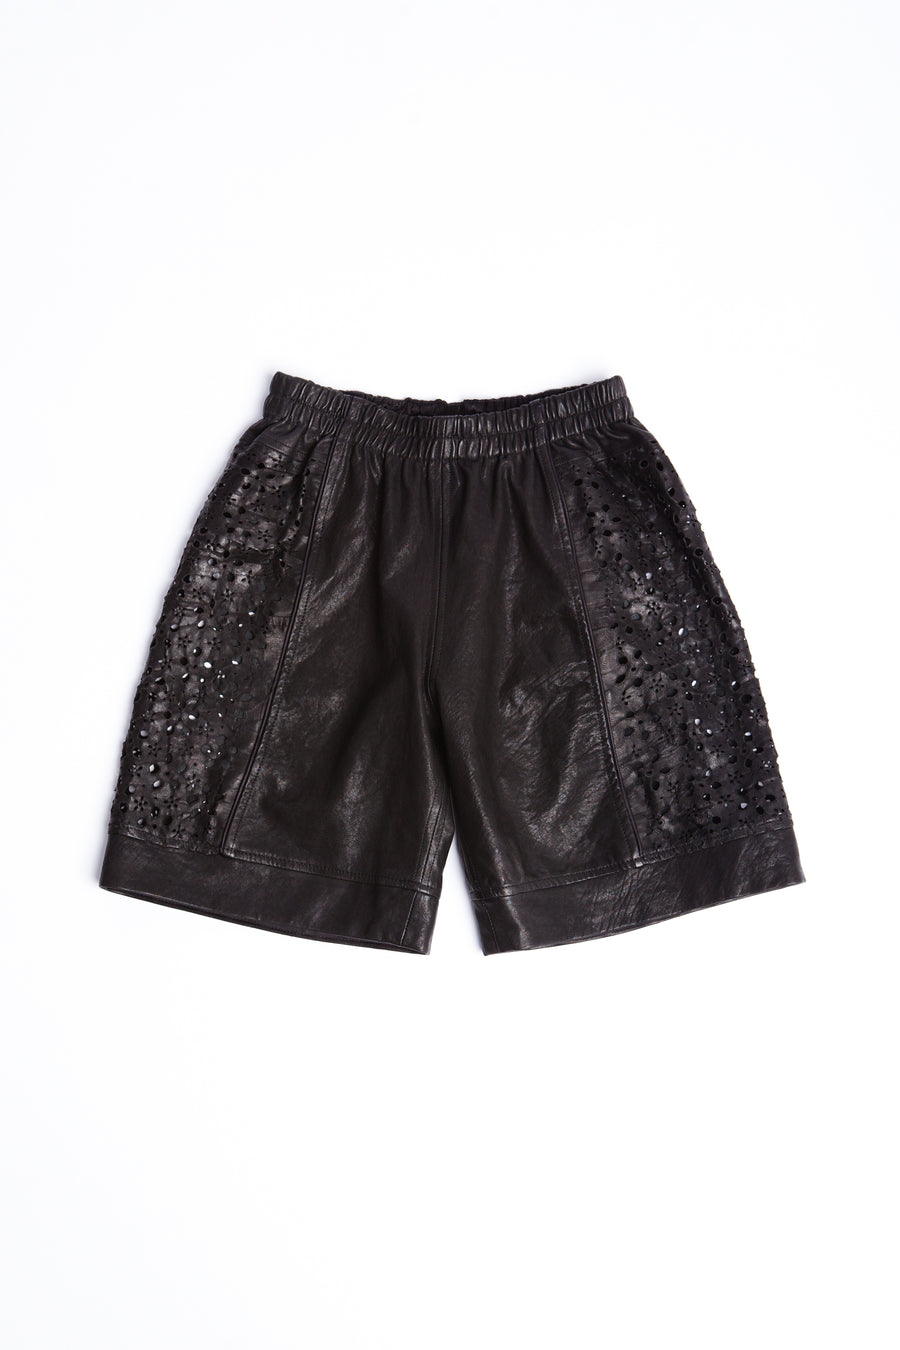 Flower pattern shorts